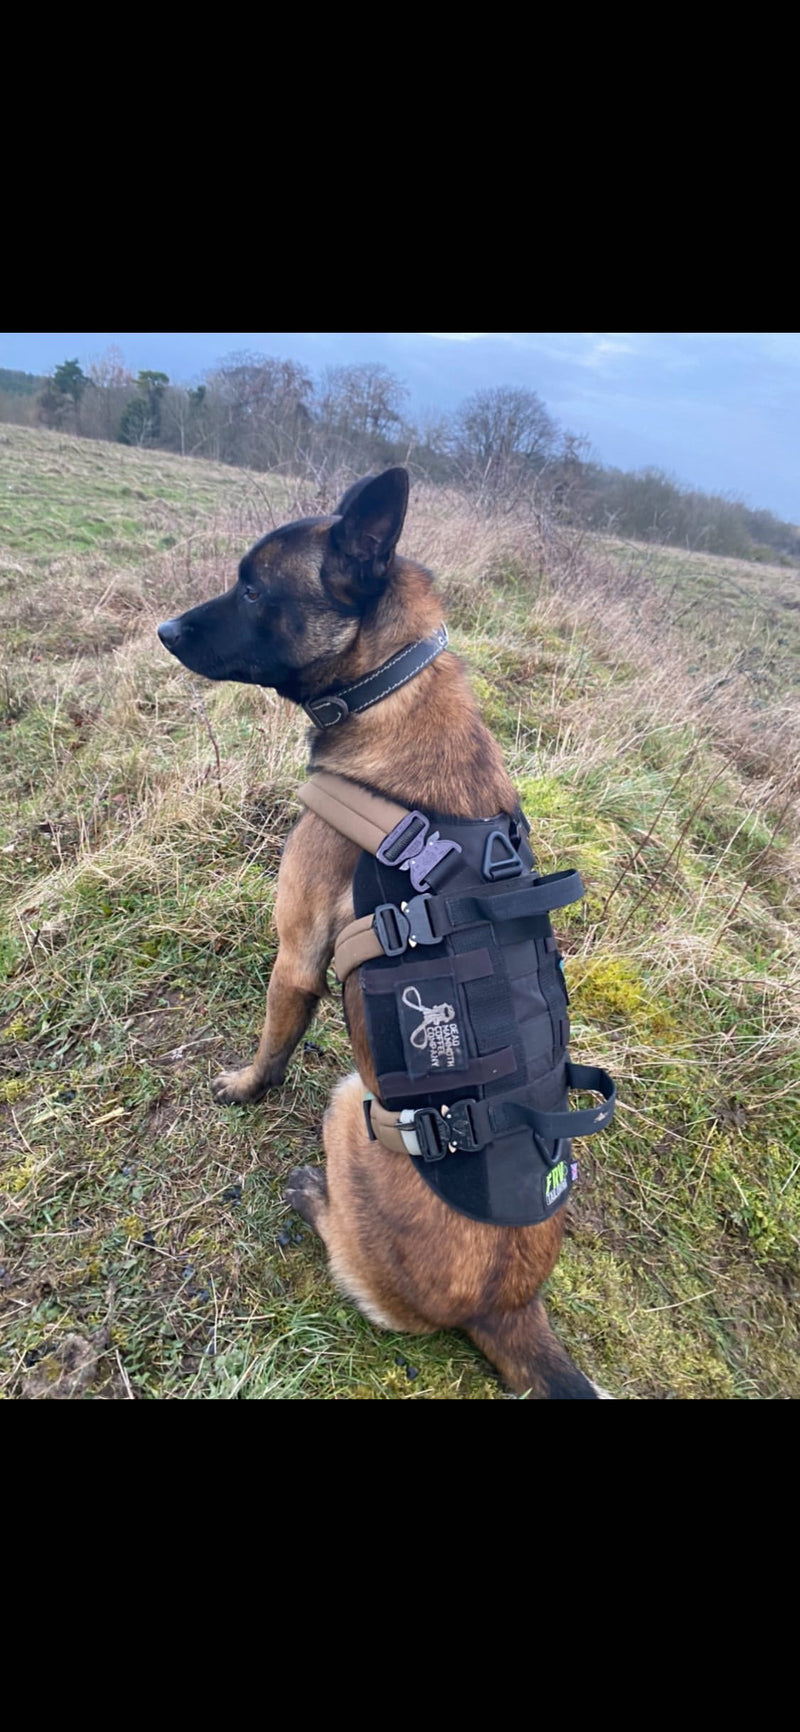 Search & Rescue Harness (Polymer buckles)